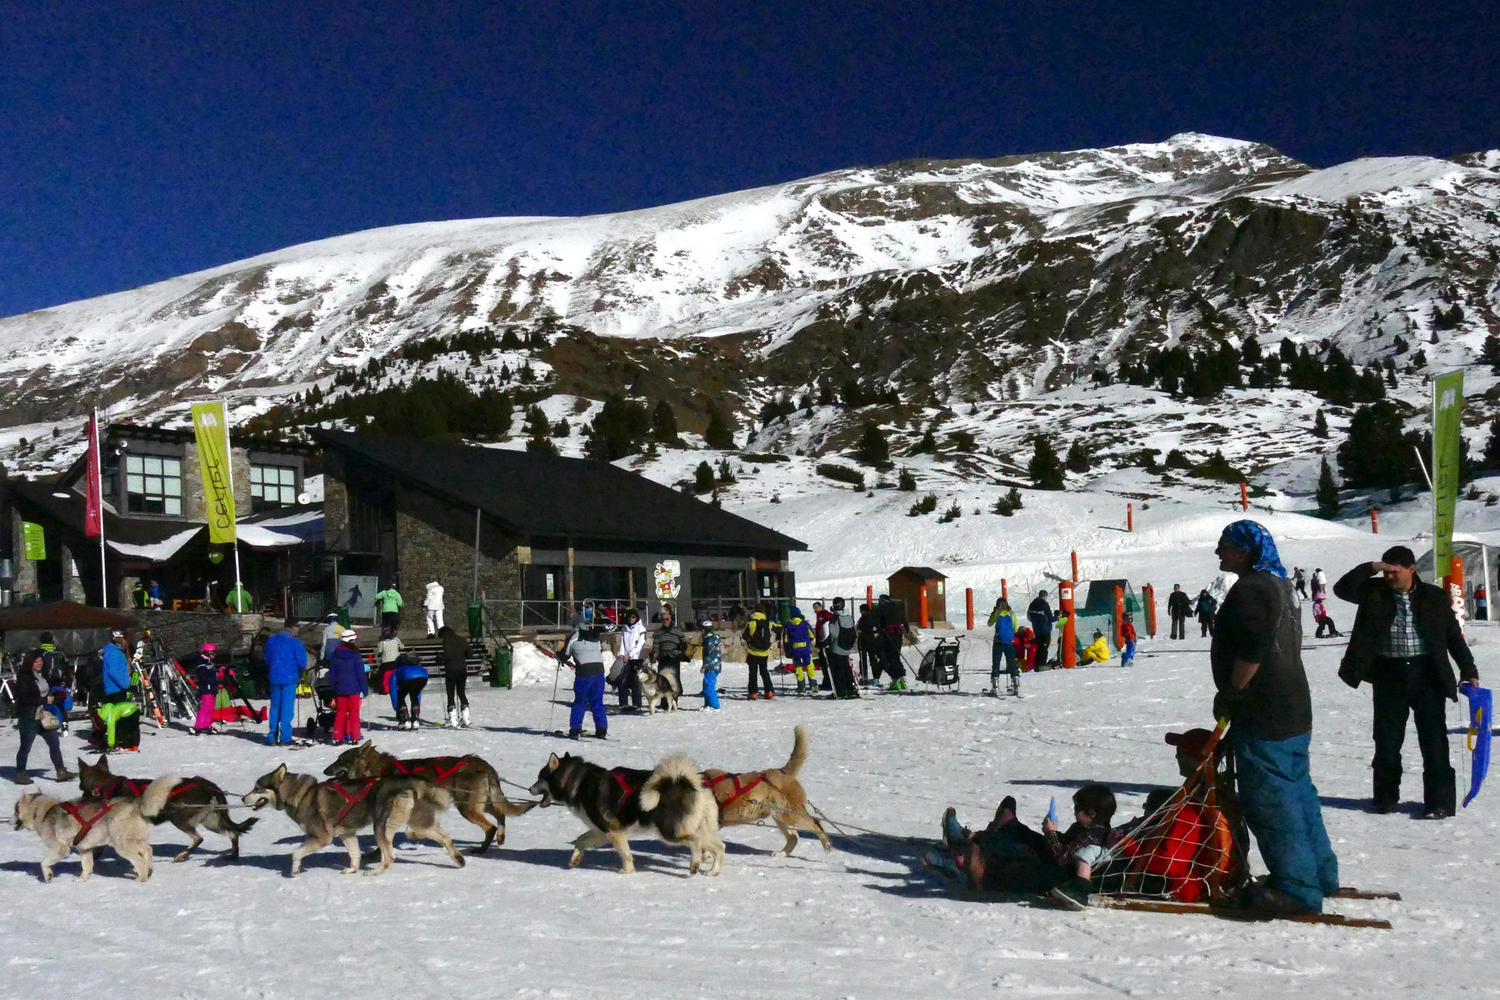 Husky sledding is another fun pastime on offer in Cerler